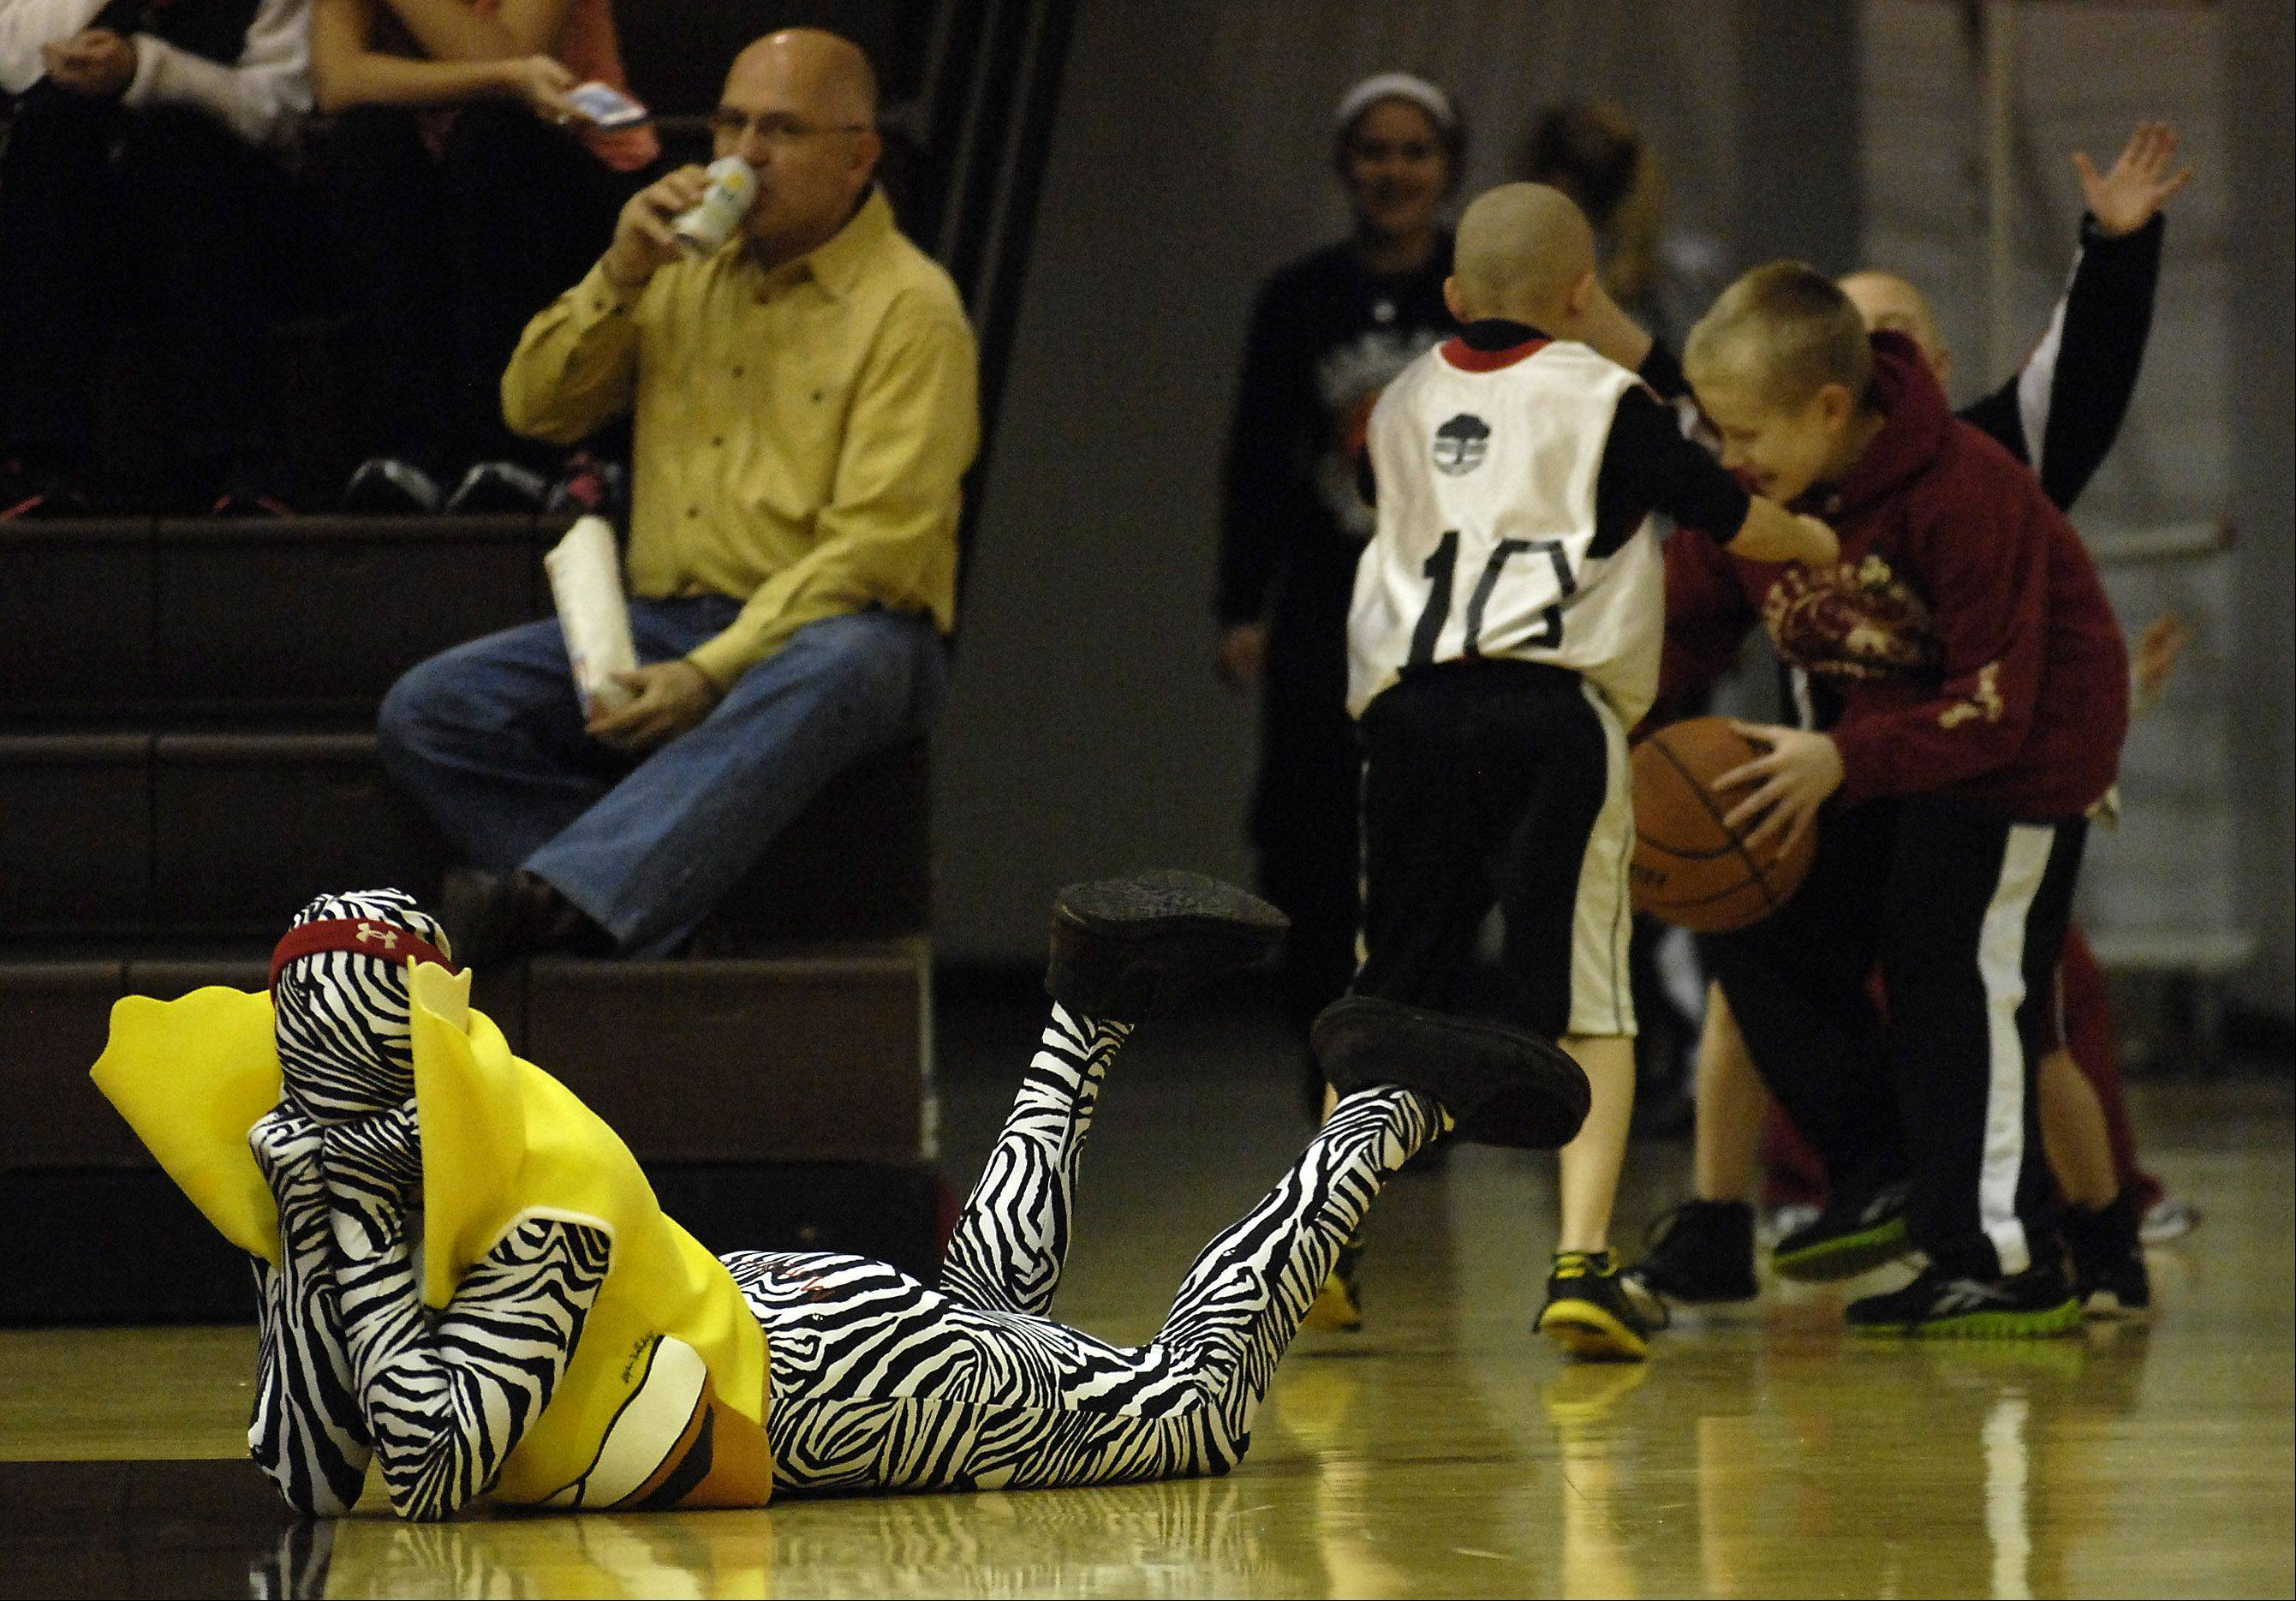 Huntley Red Raiders fan Nick Corpolongro, 18, of Huntley lays on the court before the championship of the Jacobs Holiday Tournament between Huntley and Crystal Lake Central.